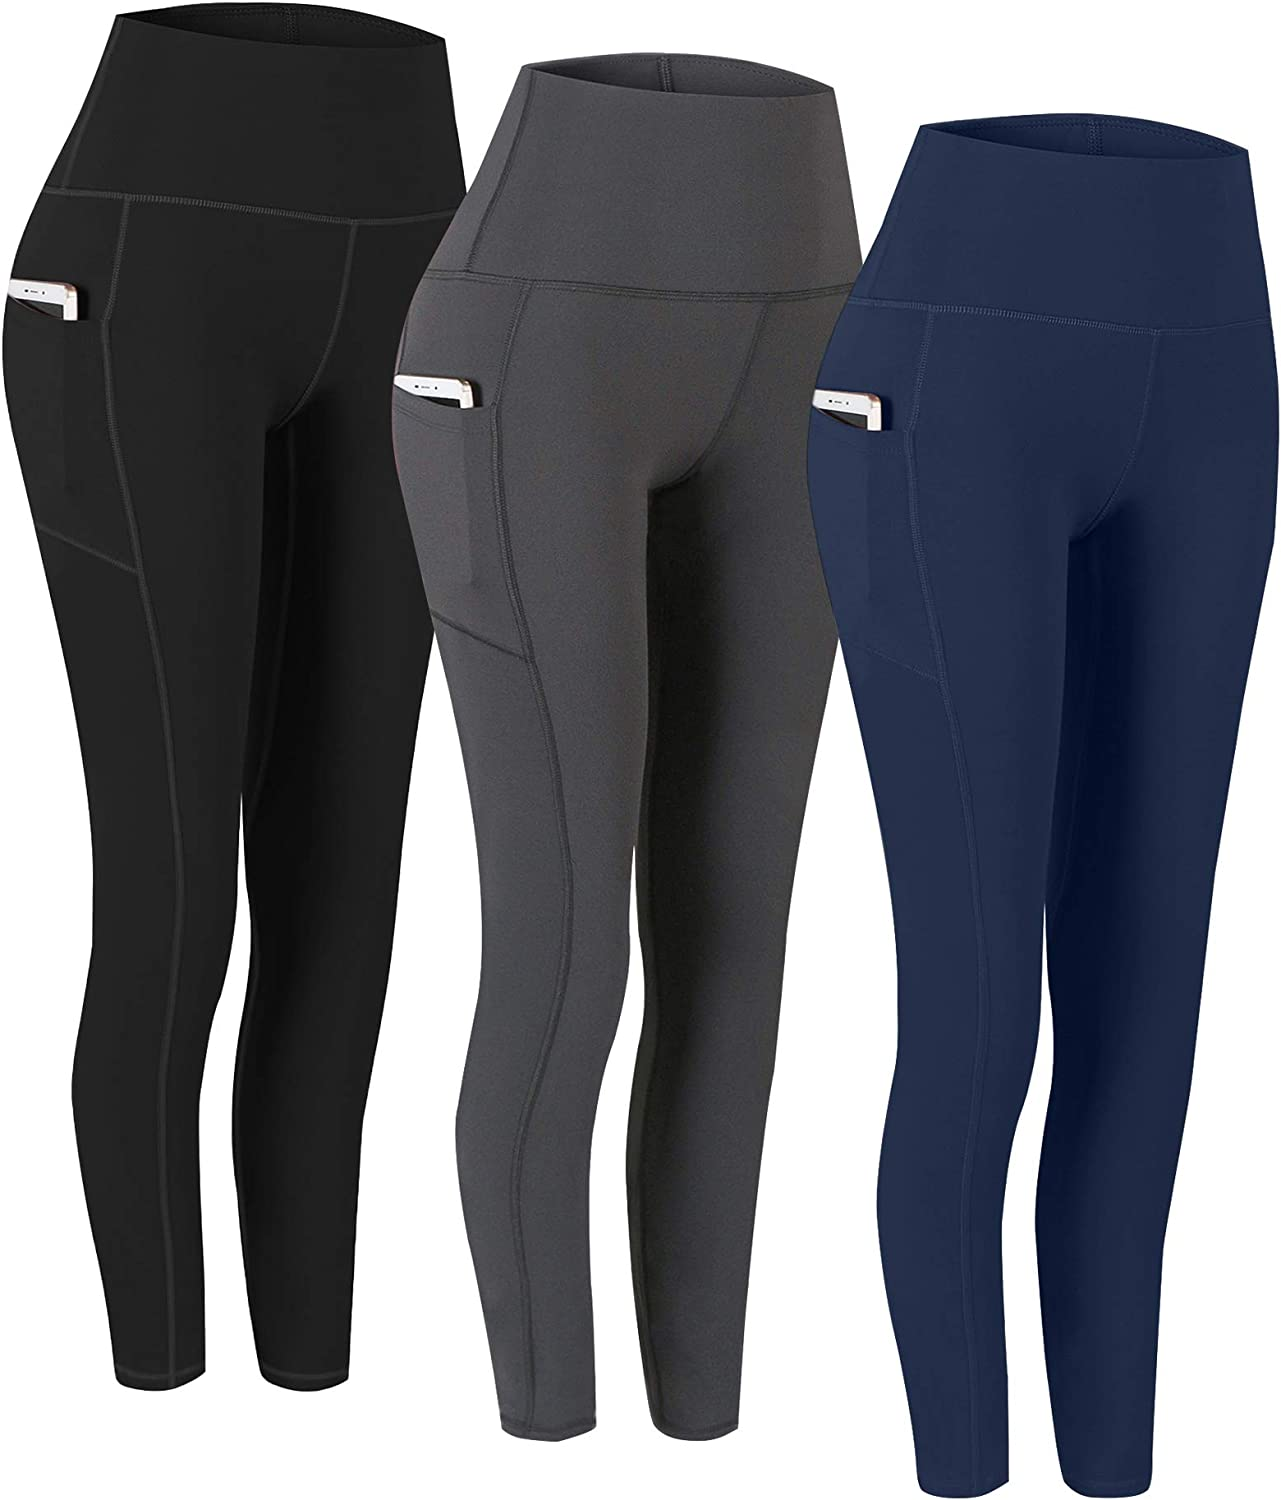 Pocket Yoga Pants Tummy Control Workout Running 4 Way Stretch Yoga Leggings Fengbay 2 Pack High Waist Yoga Pants